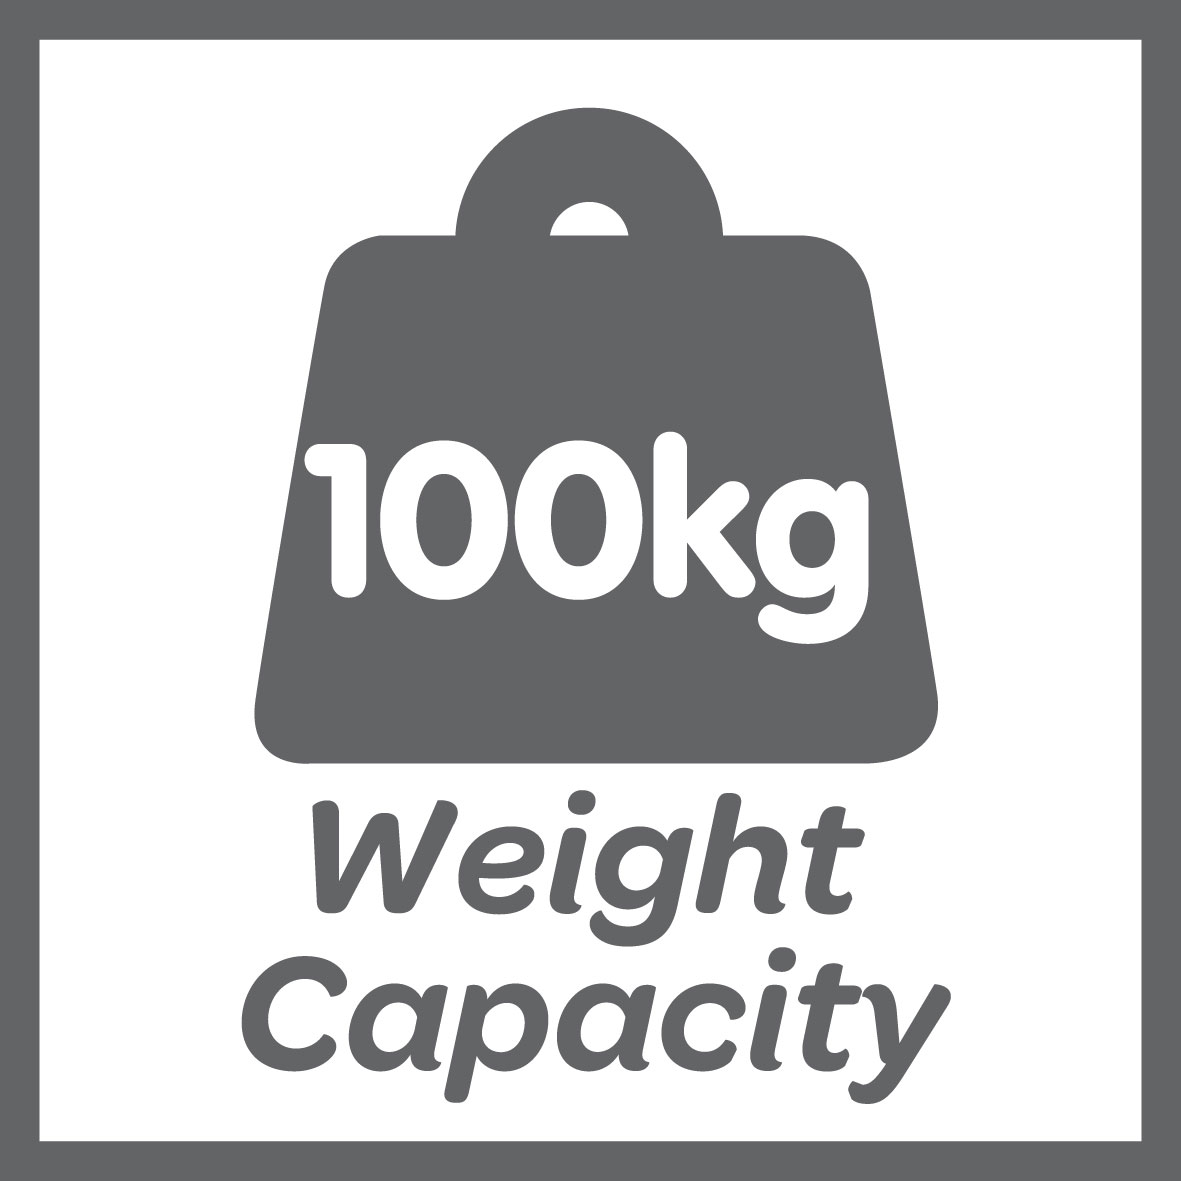 This product has a 100kg weight limit